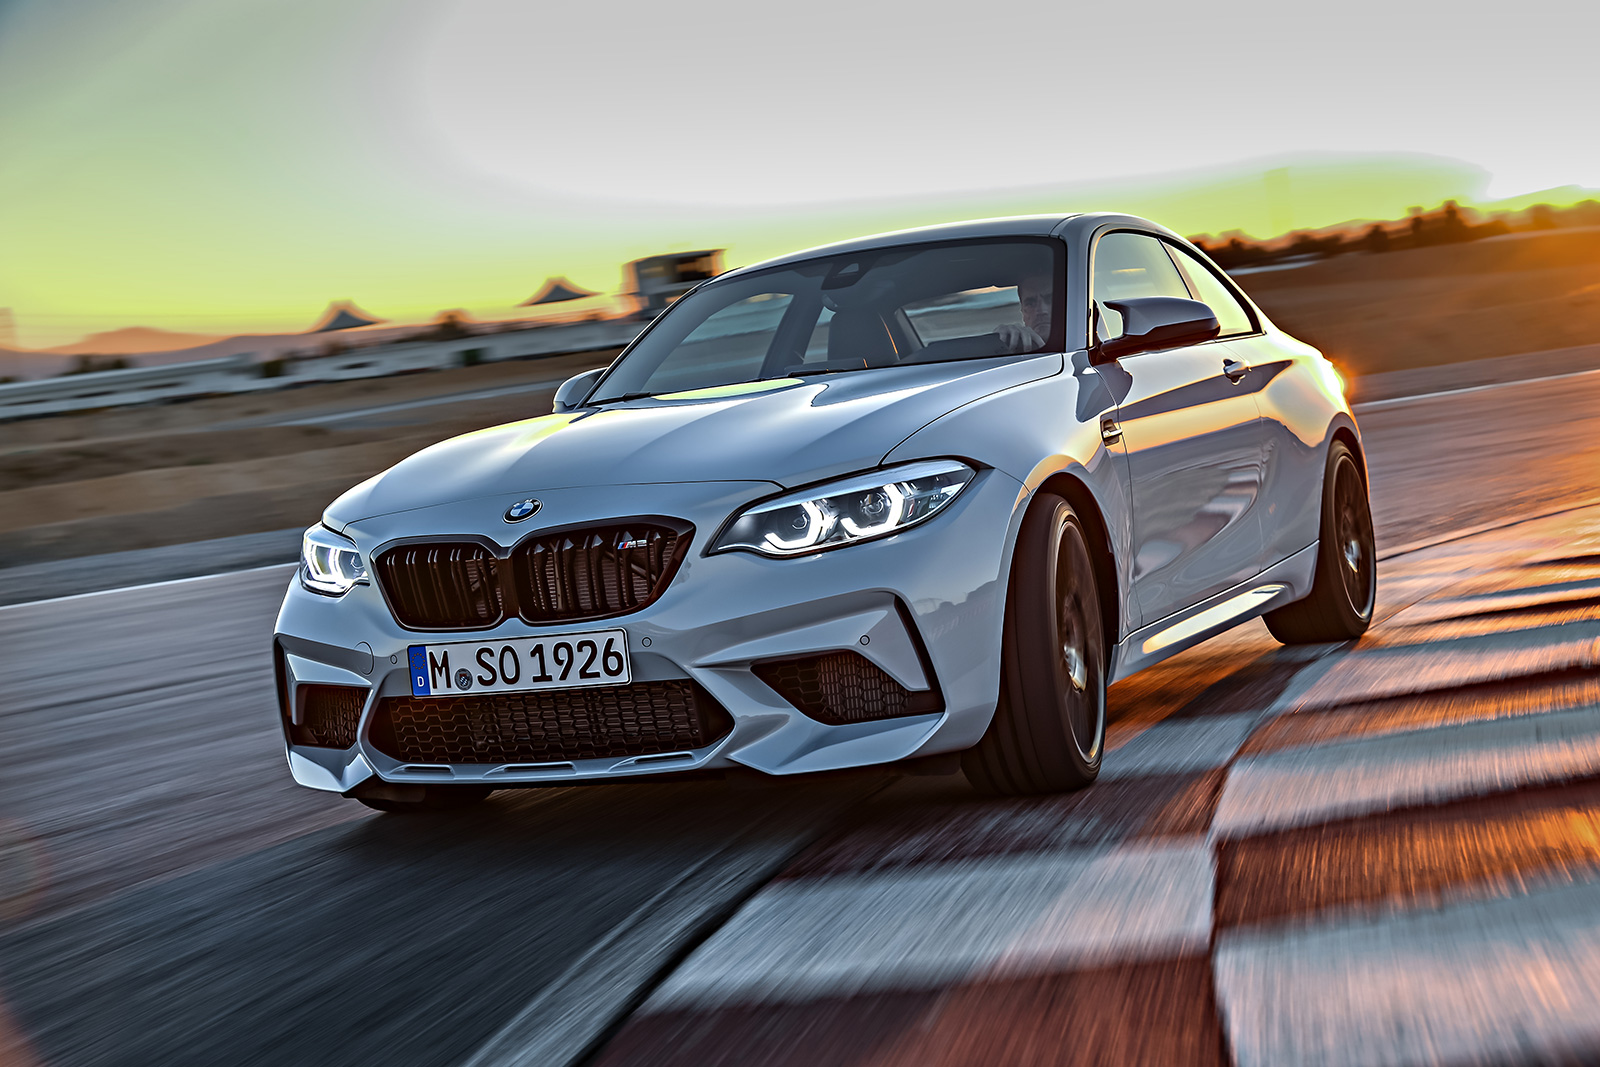 Bmw M3 Reviews >> 2019 BMW M2 Competition Officially Arrives With 405 HP » AutoGuide.com News